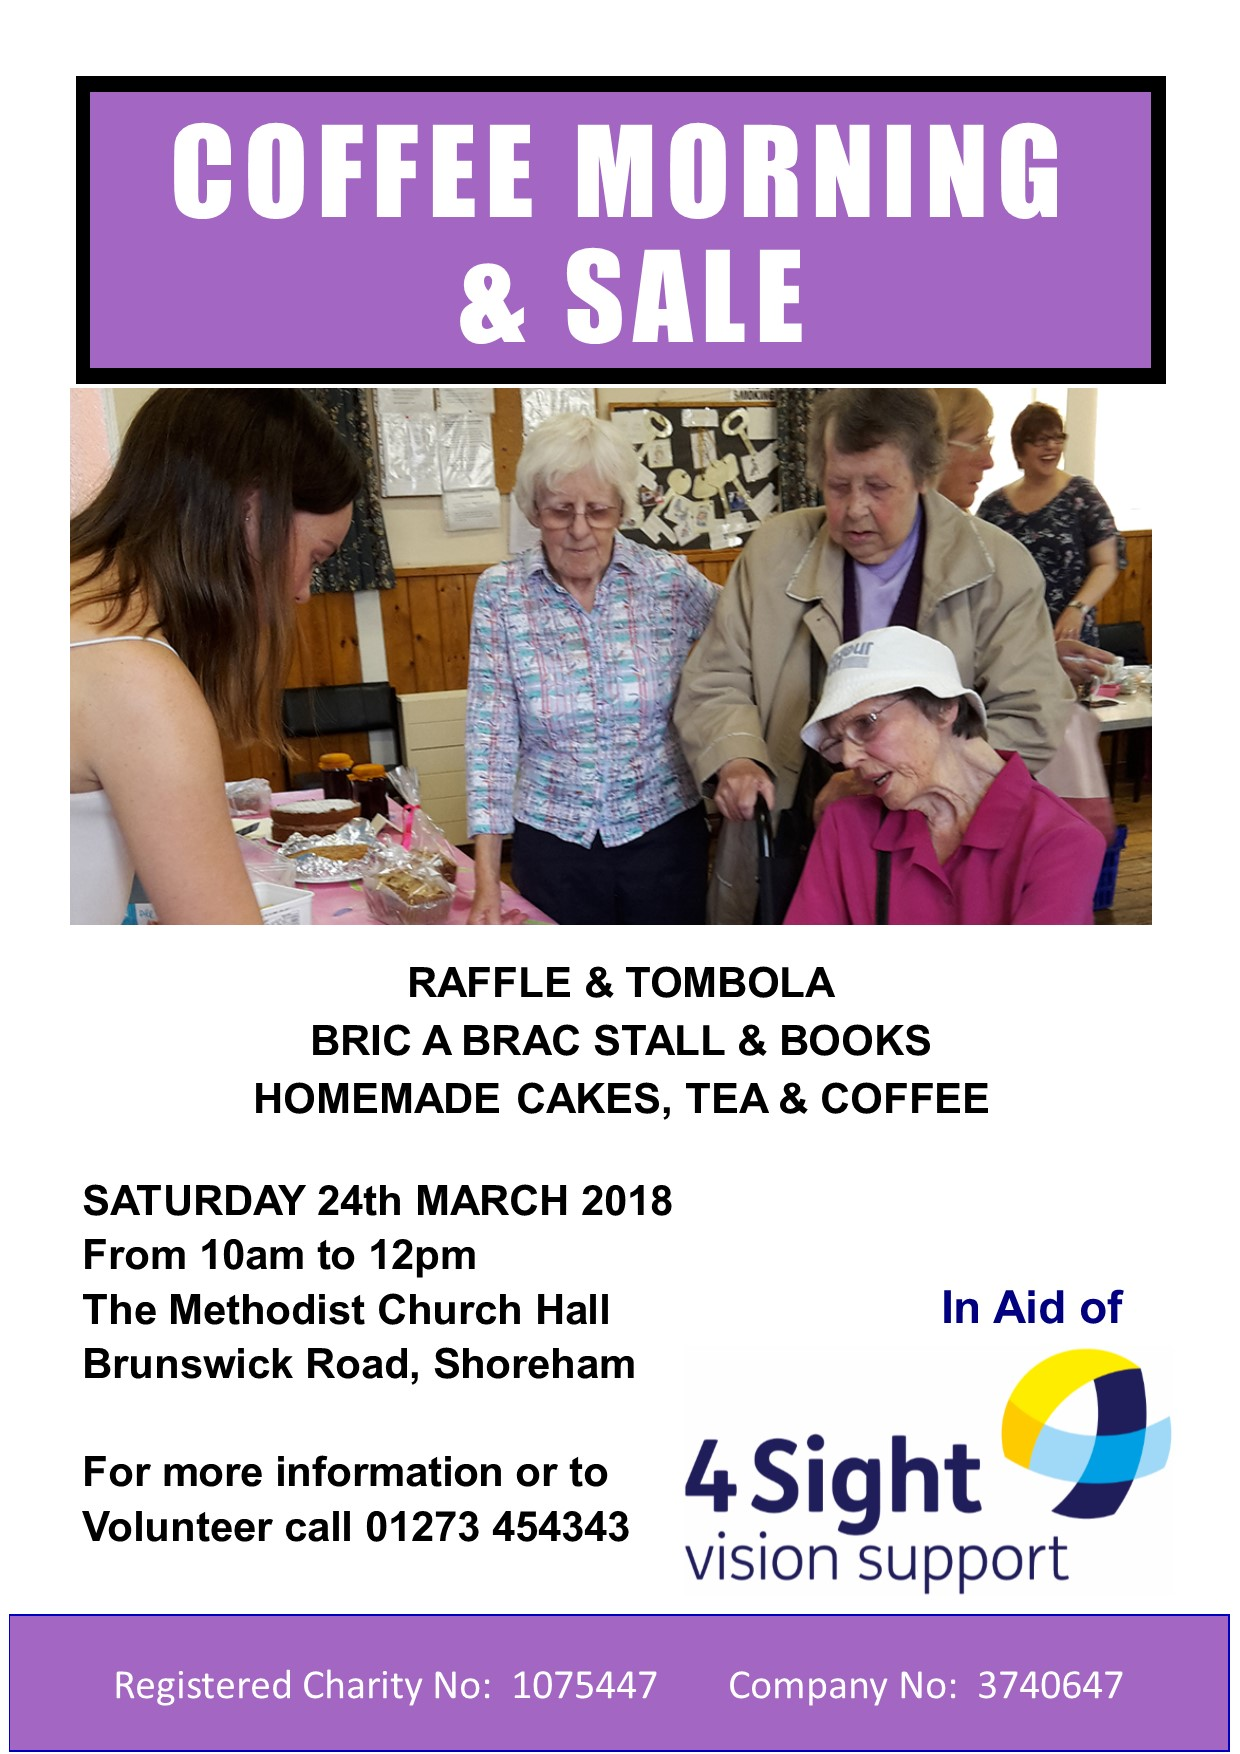 There will be a Coffee Morning and Sale in aid of 4Sight Vision Support in Shoreham on Saturday 24 March from 10am until noon.